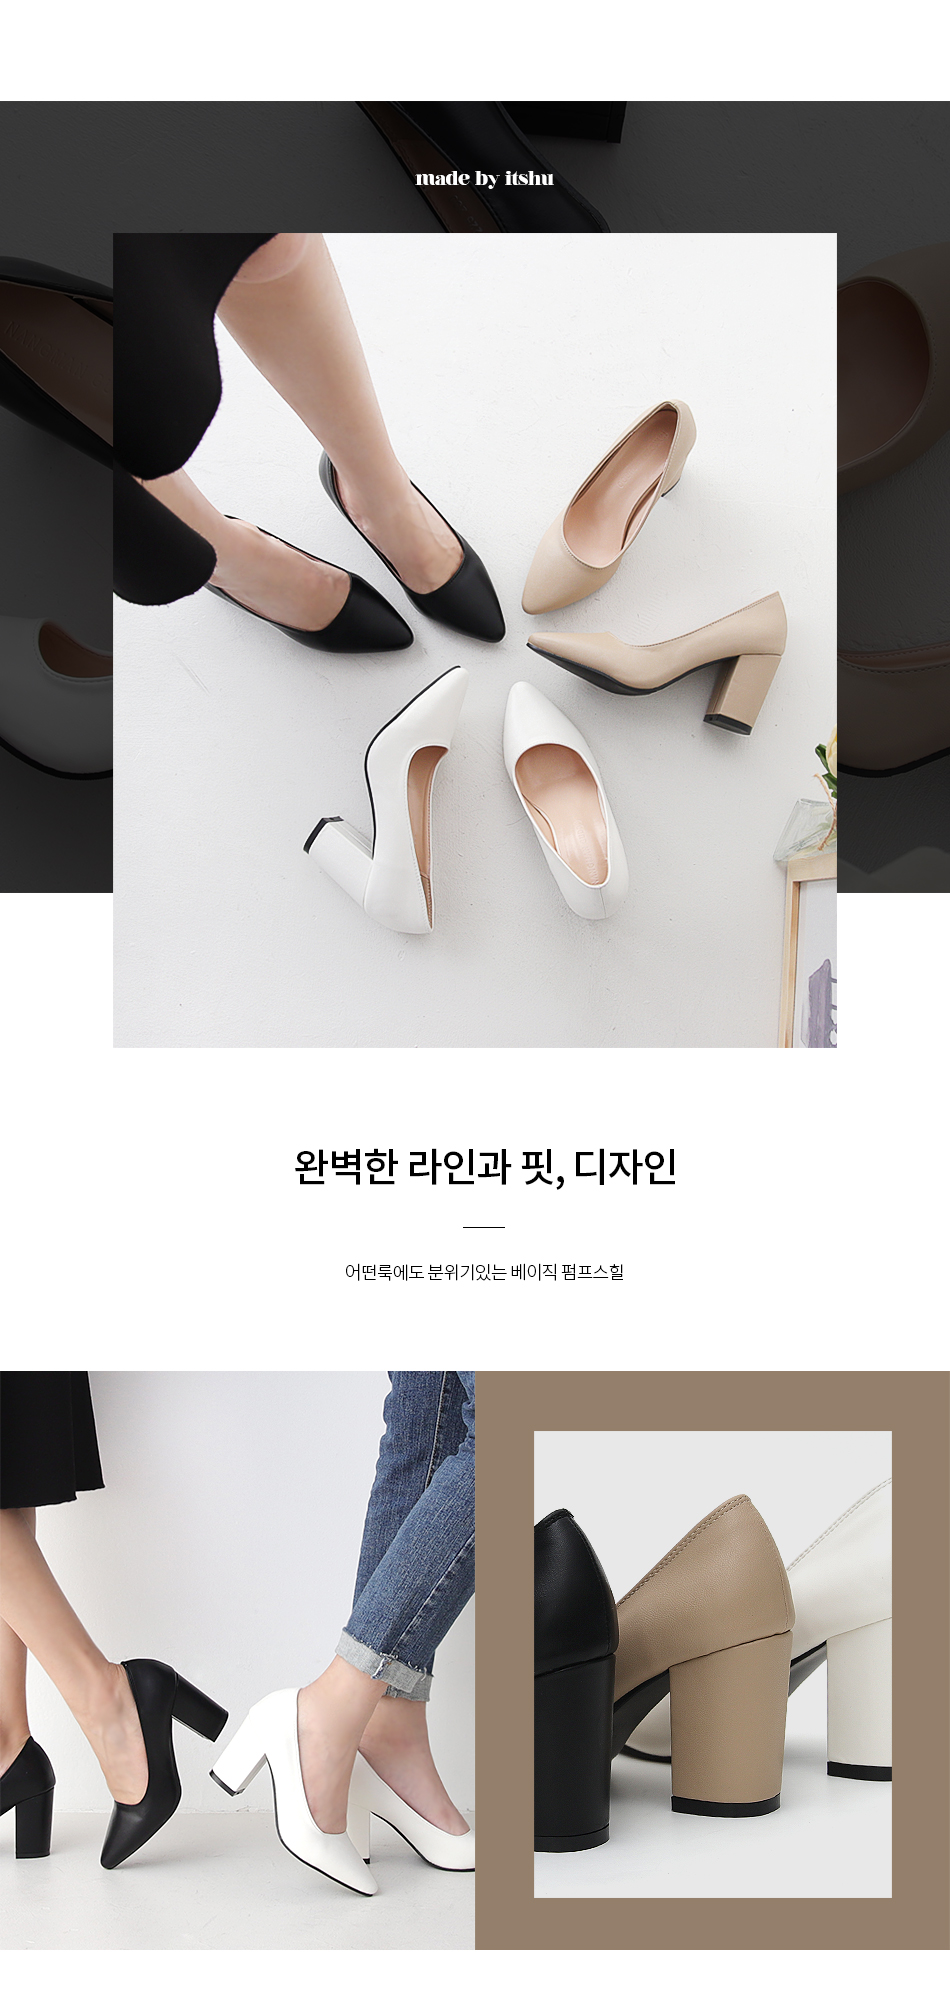 Isshu pointed nose block heel pumps basic high heels 5225 ♡ 3rd edition ♡